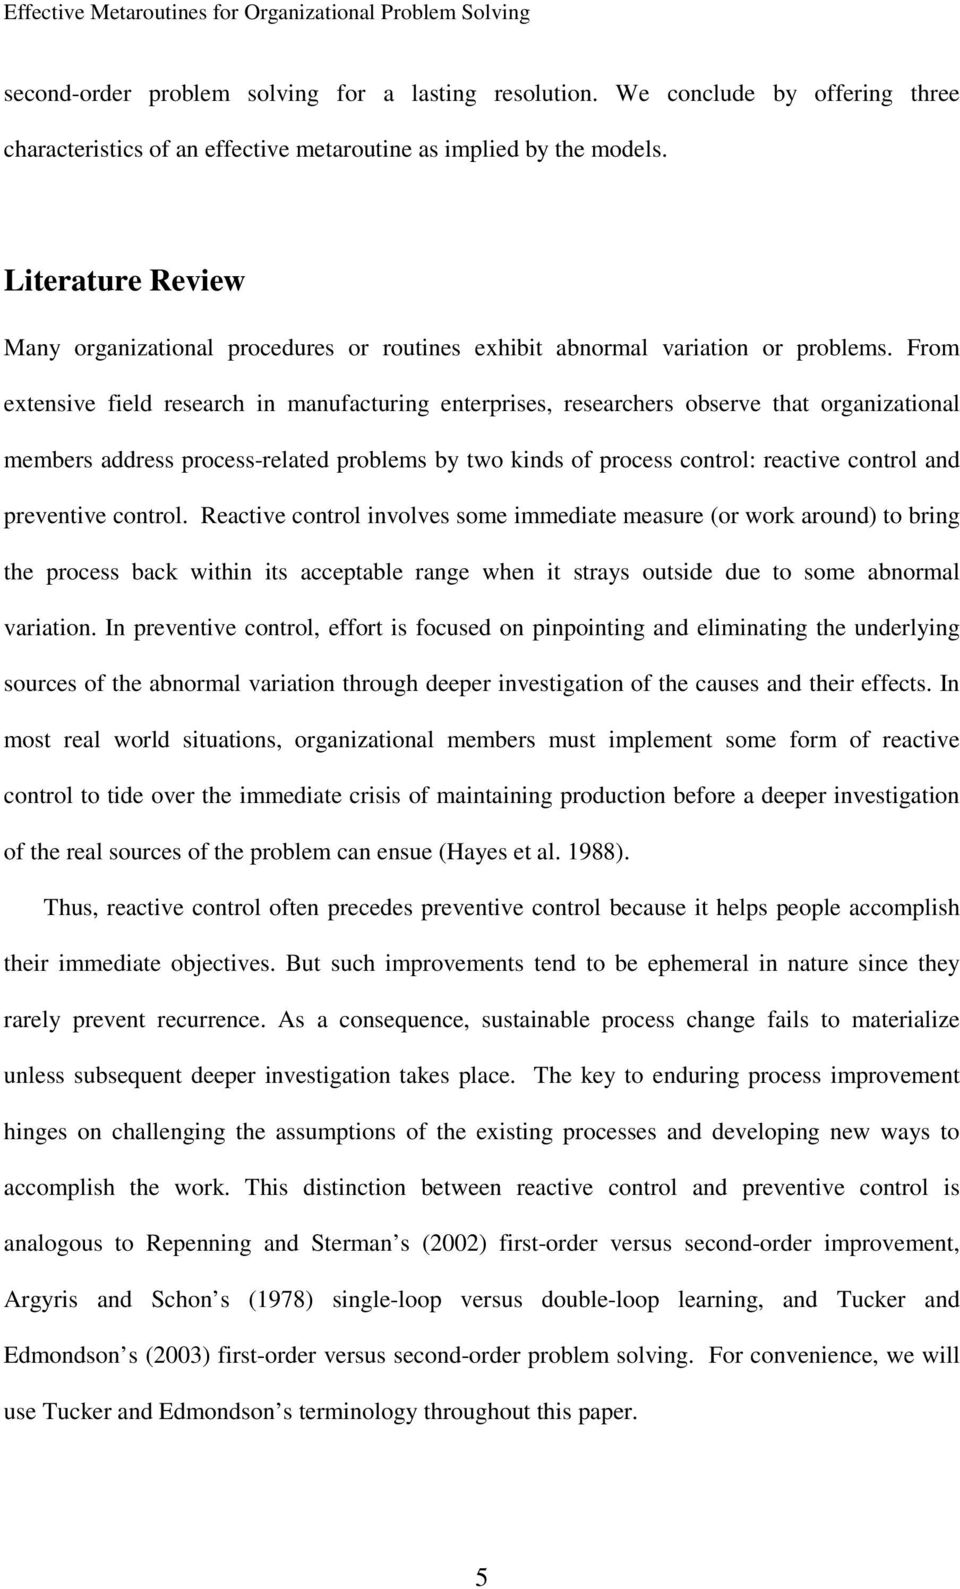 From extensive field research in manufacturing enterprises, researchers observe that organizational members address process-related problems by two kinds of process control: reactive control and